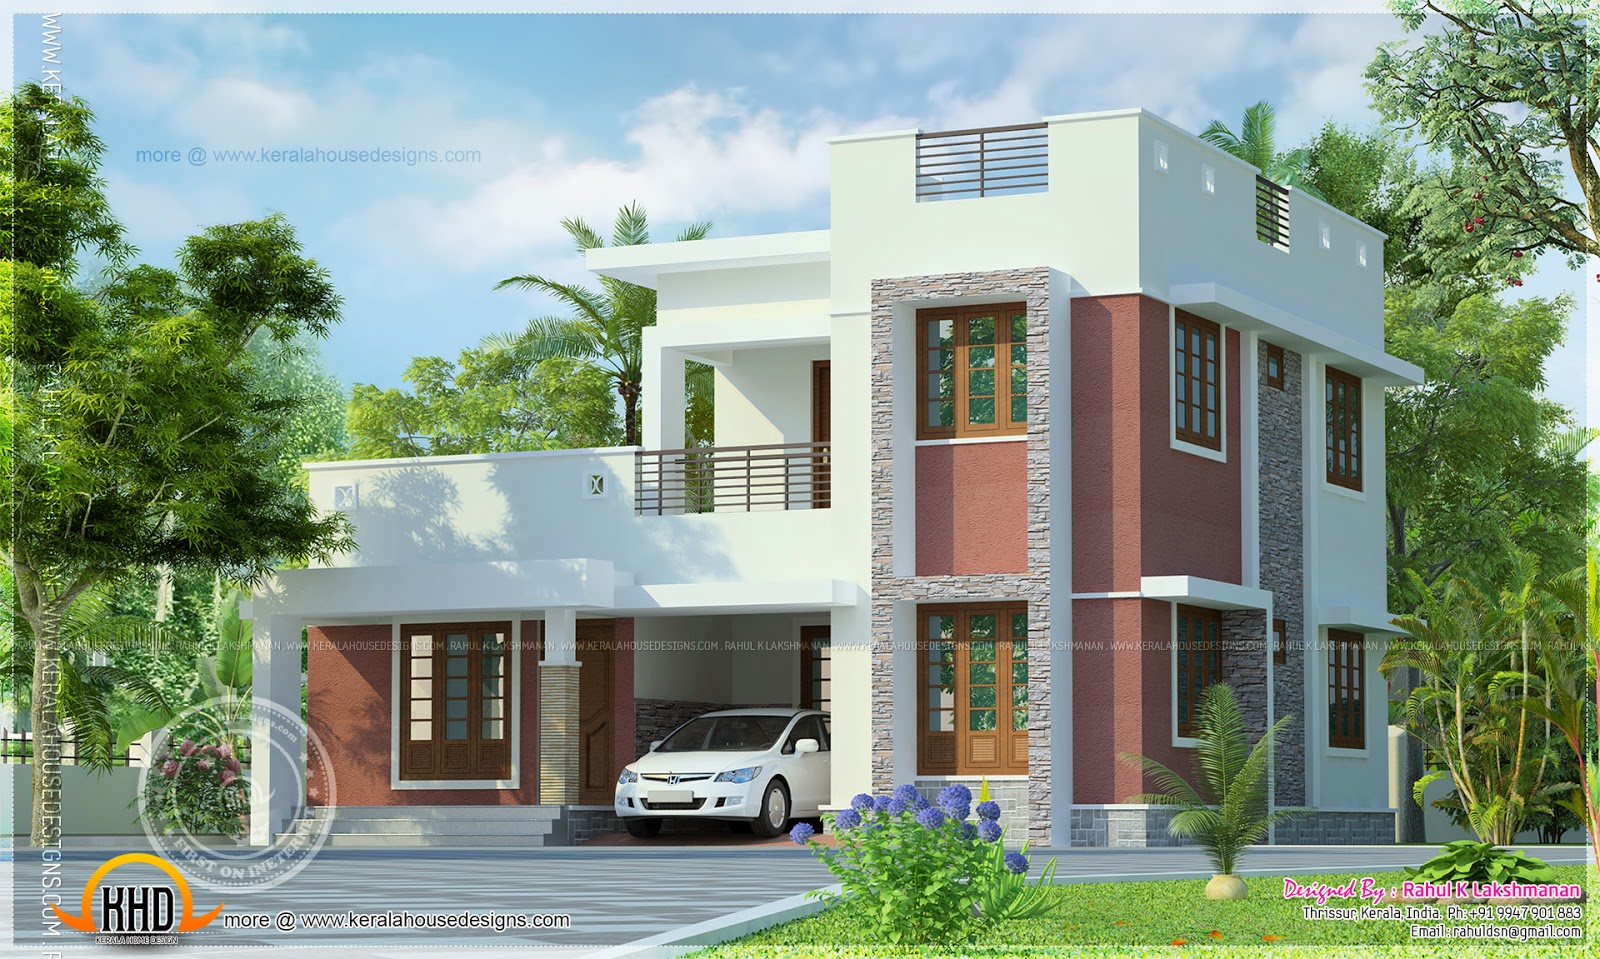 Simple flat roof house exterior kerala home design and for Simple roof design house plans